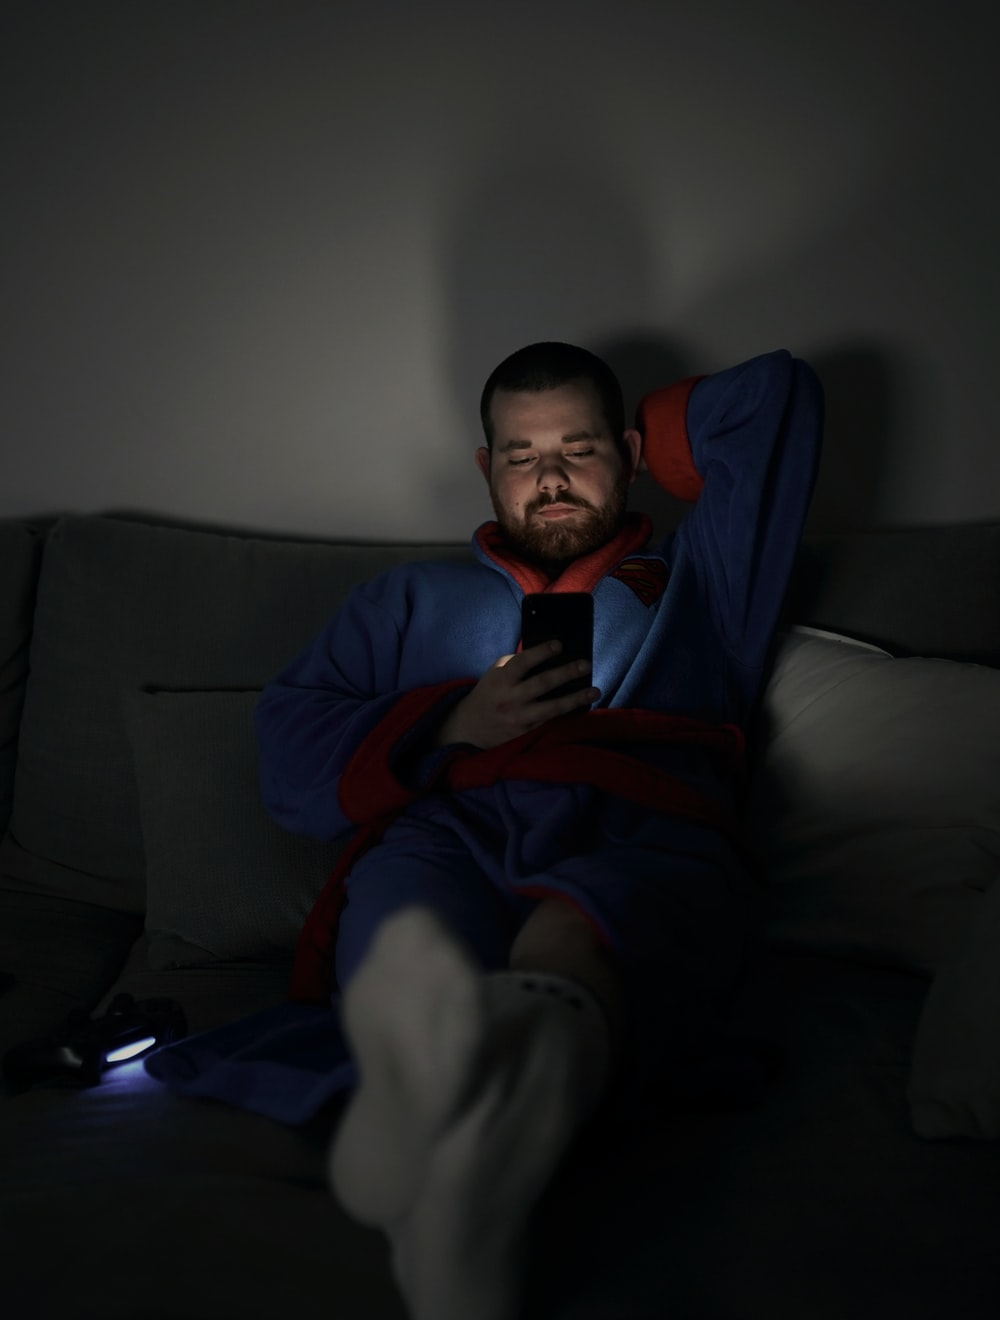 man sits on sofa while using smartphone